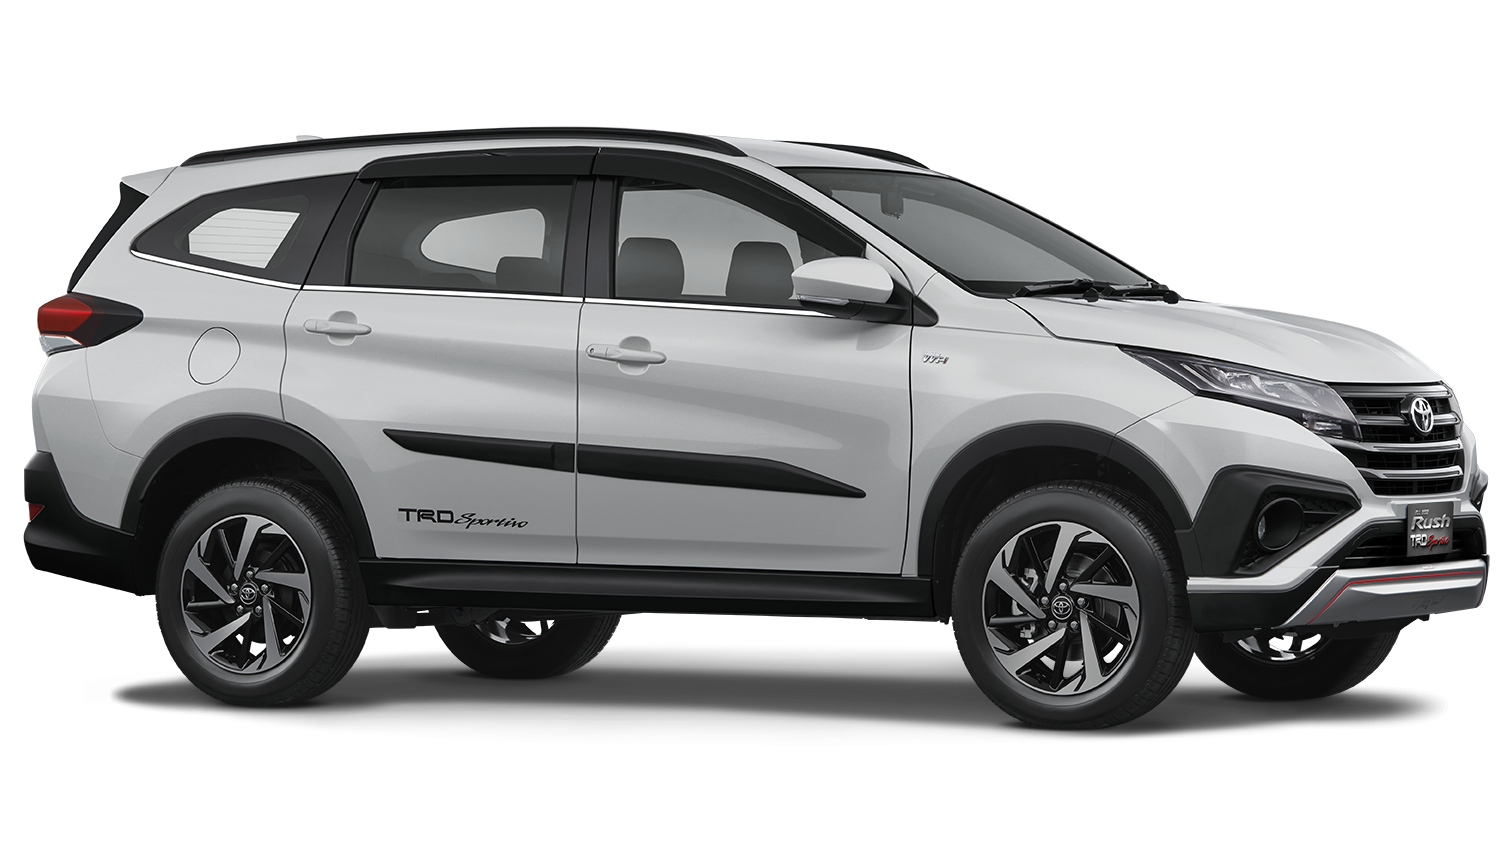 All New Toyota Rush 2017 Indonesia >> New 2018 Toyota Rush SUV makes debut in Indonesia Image 742841